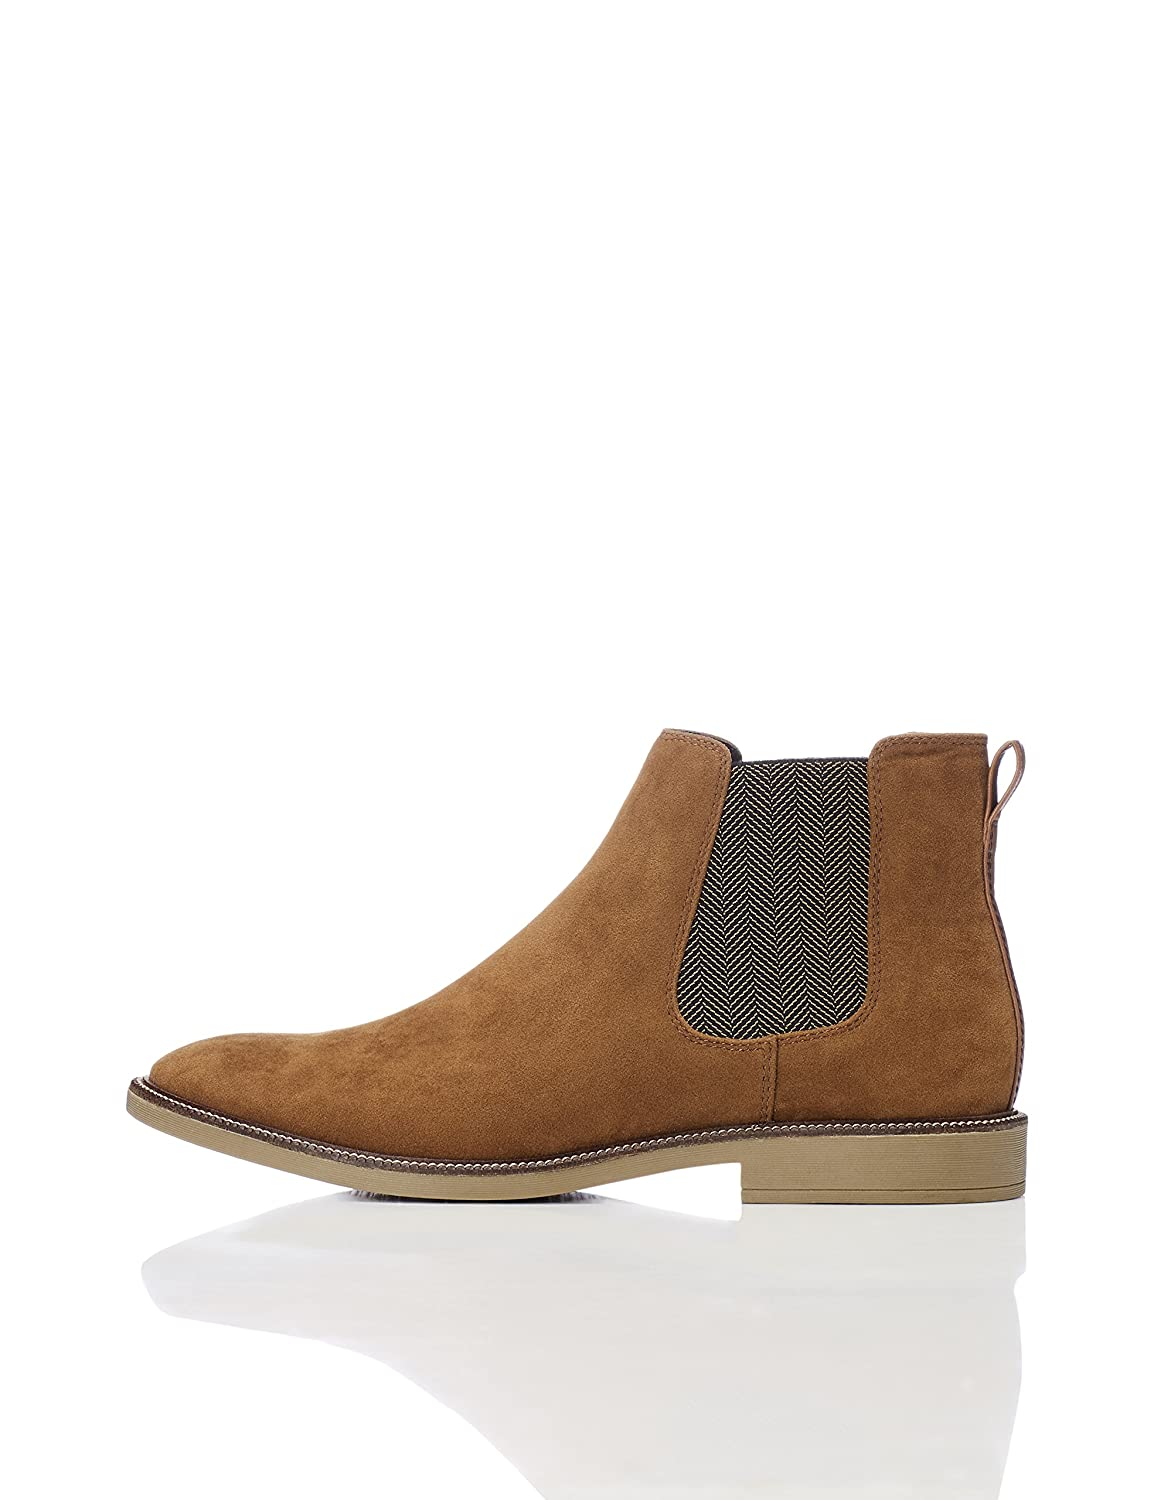 find. Botines Chelsea para Hombre